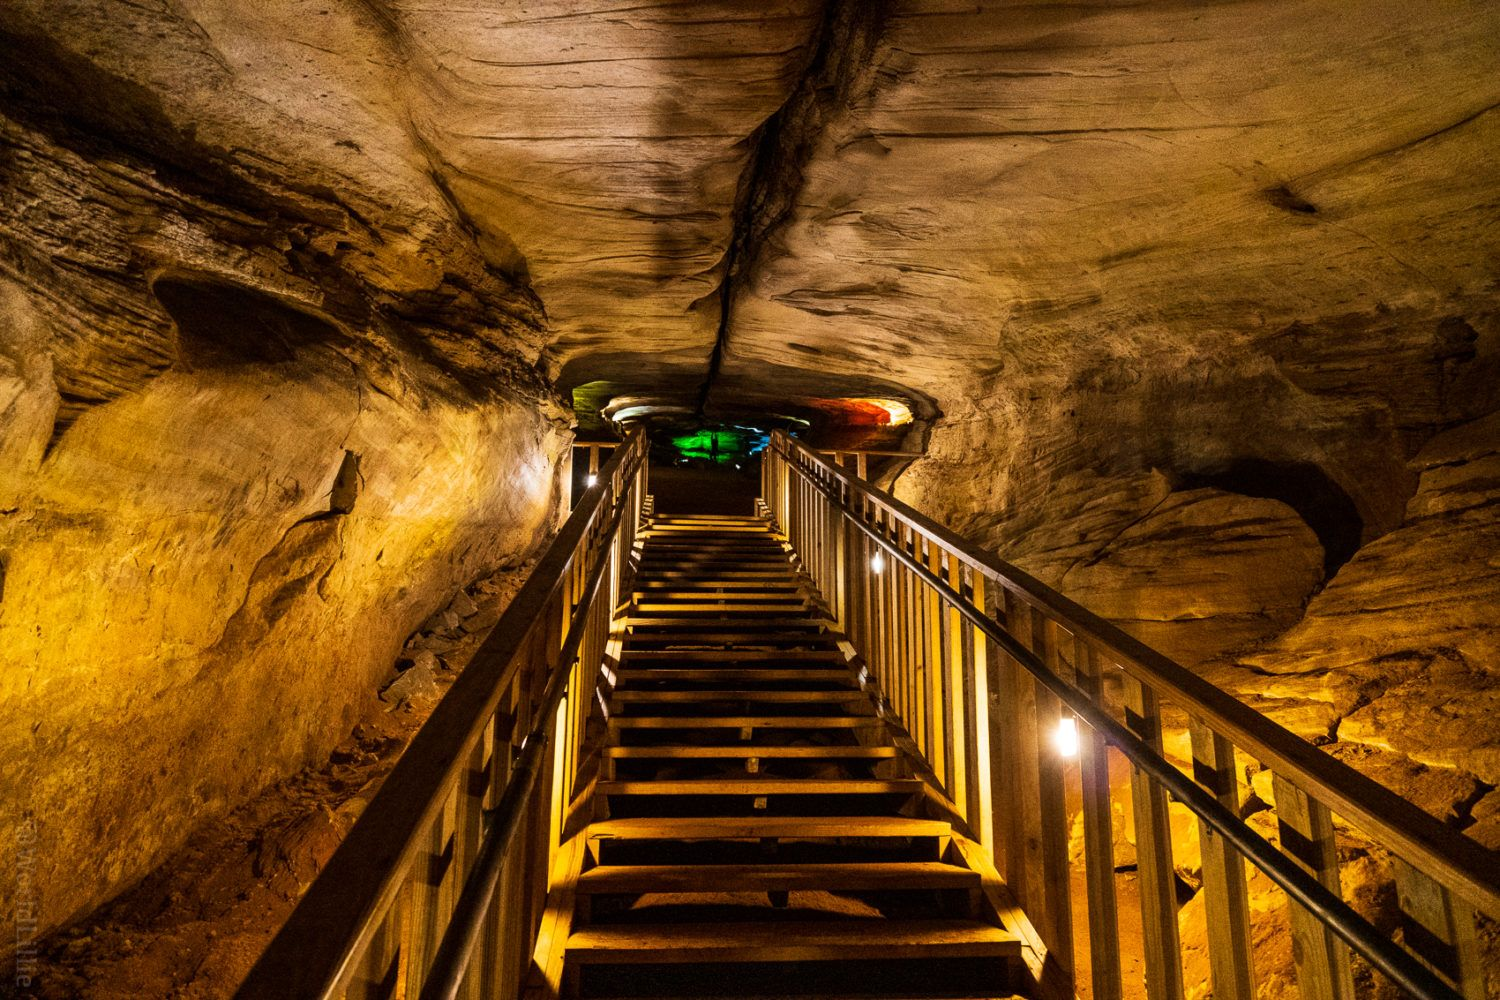 Are you claustrophobic in caves?